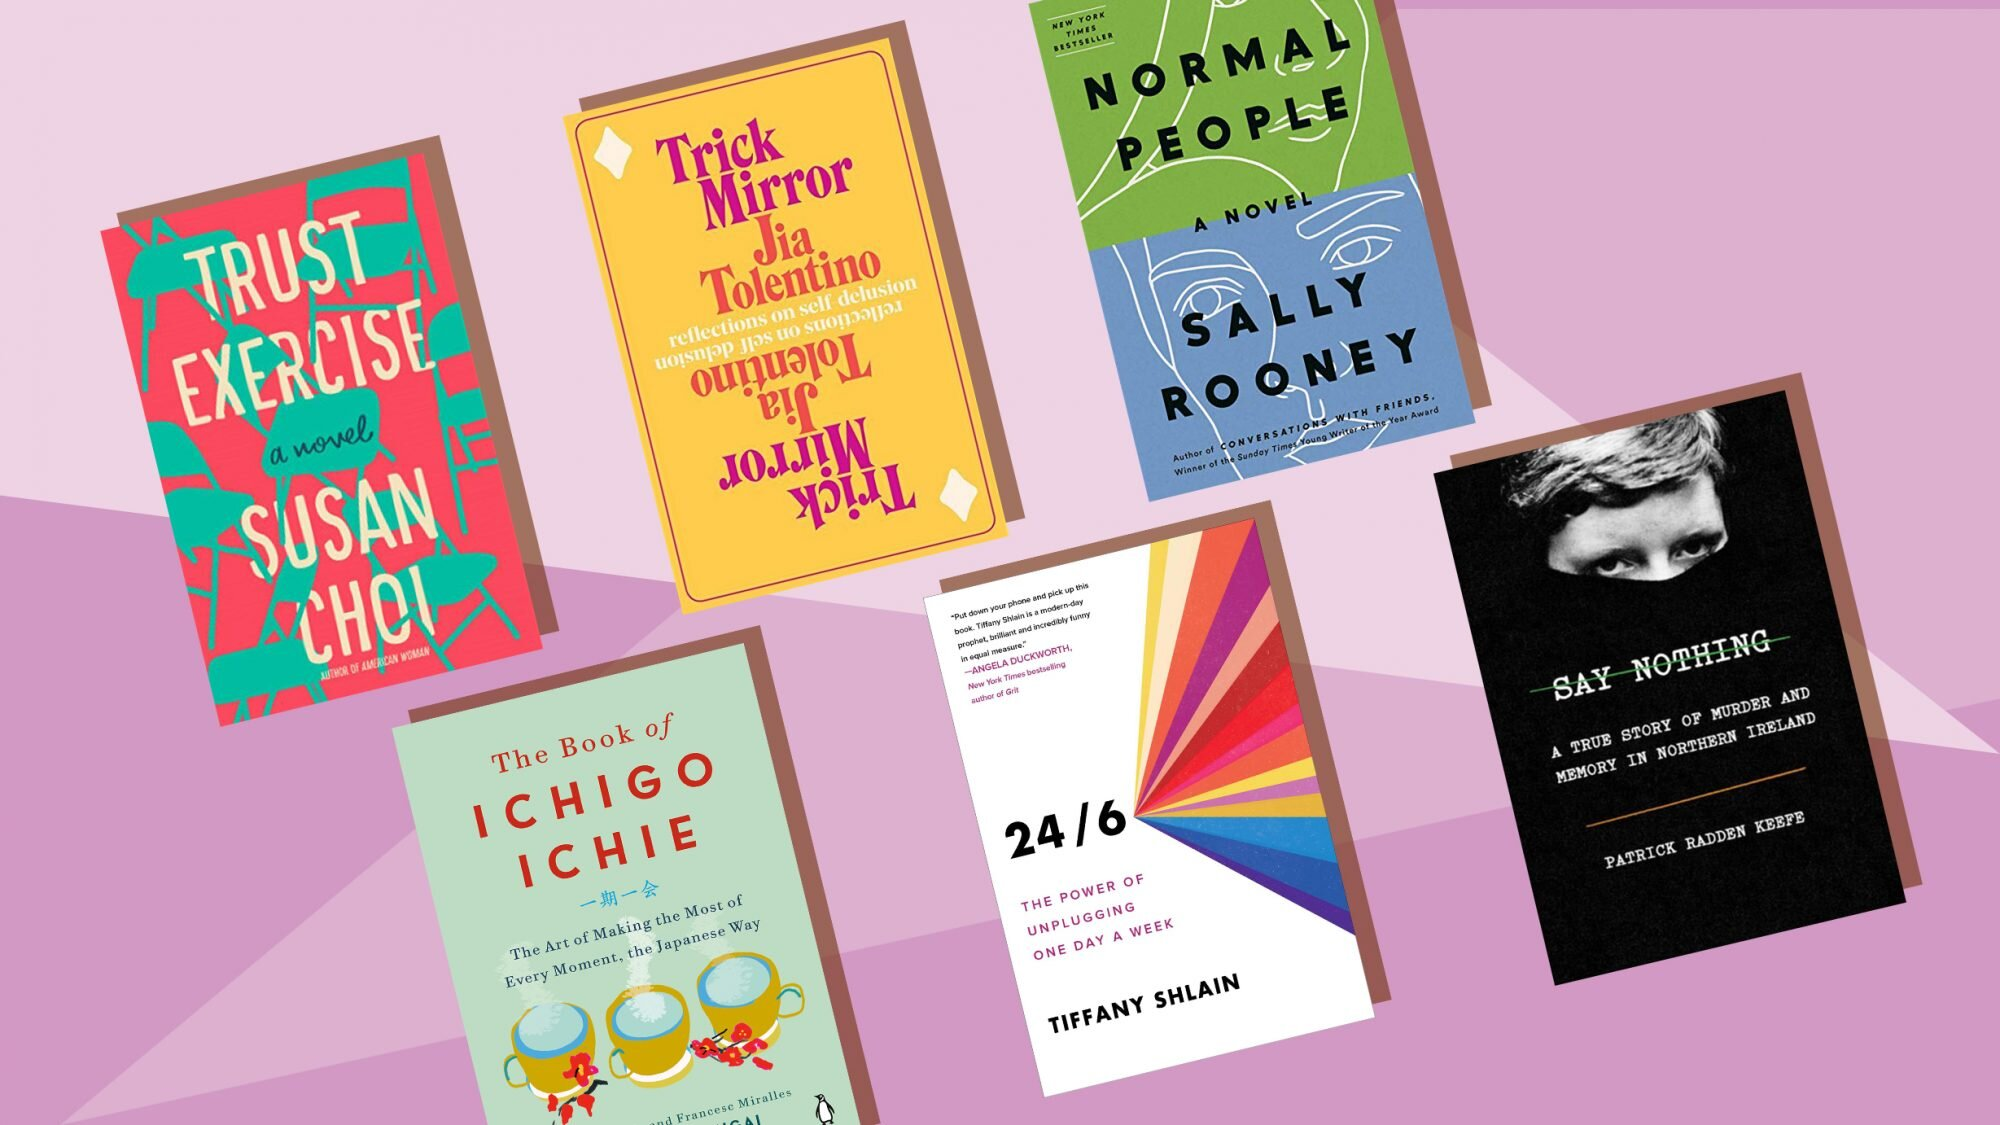 27 Great Books to Read Right Now for Any Mood or Interest | Real Simple